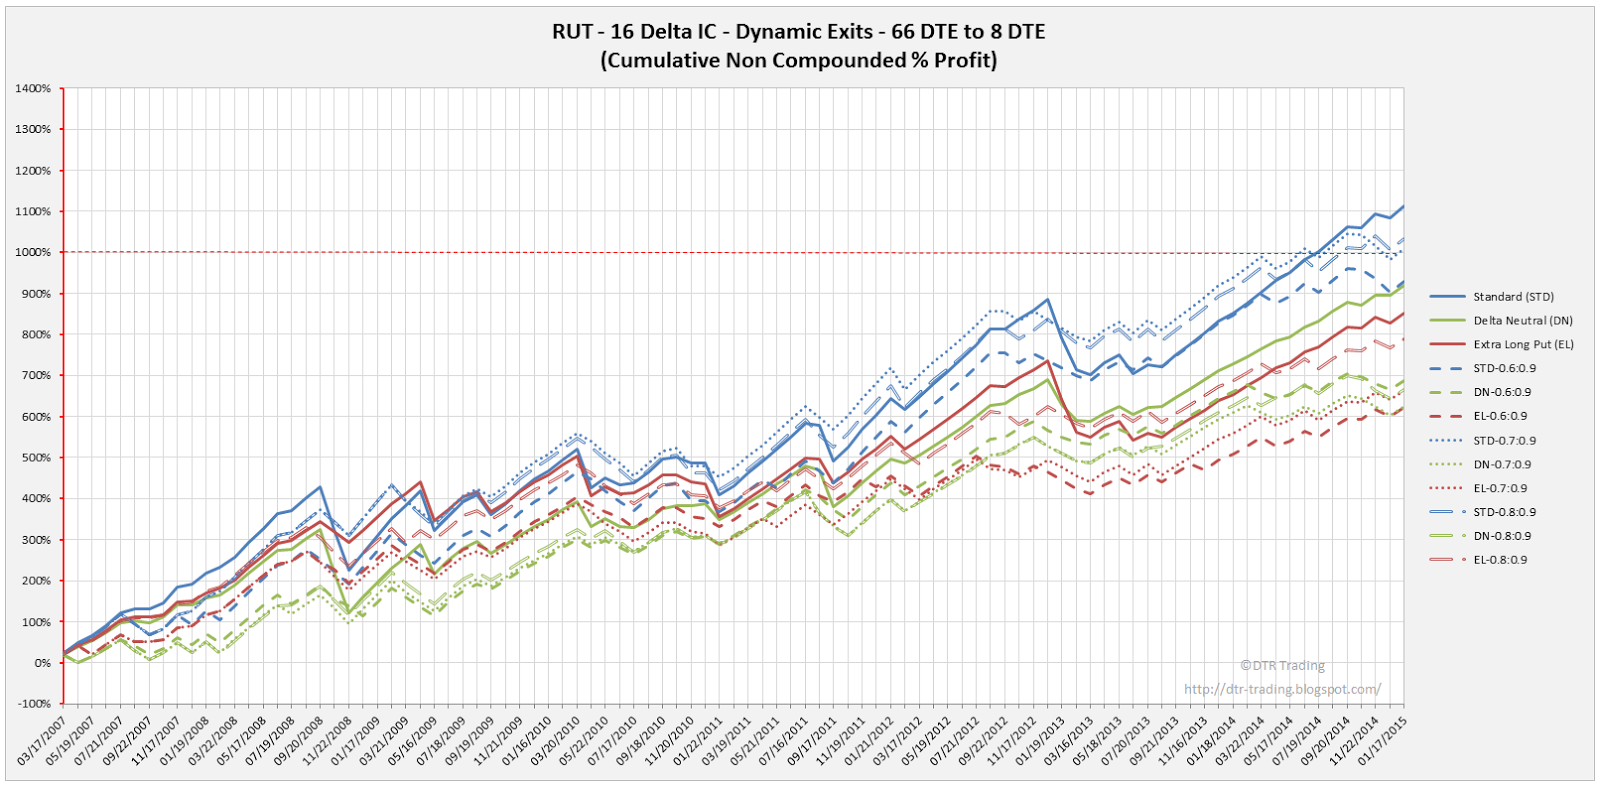 Iron Condor Dynamic Exit Equity Curves RUT 66 DTE 16 Delta Risk:Reward Versions